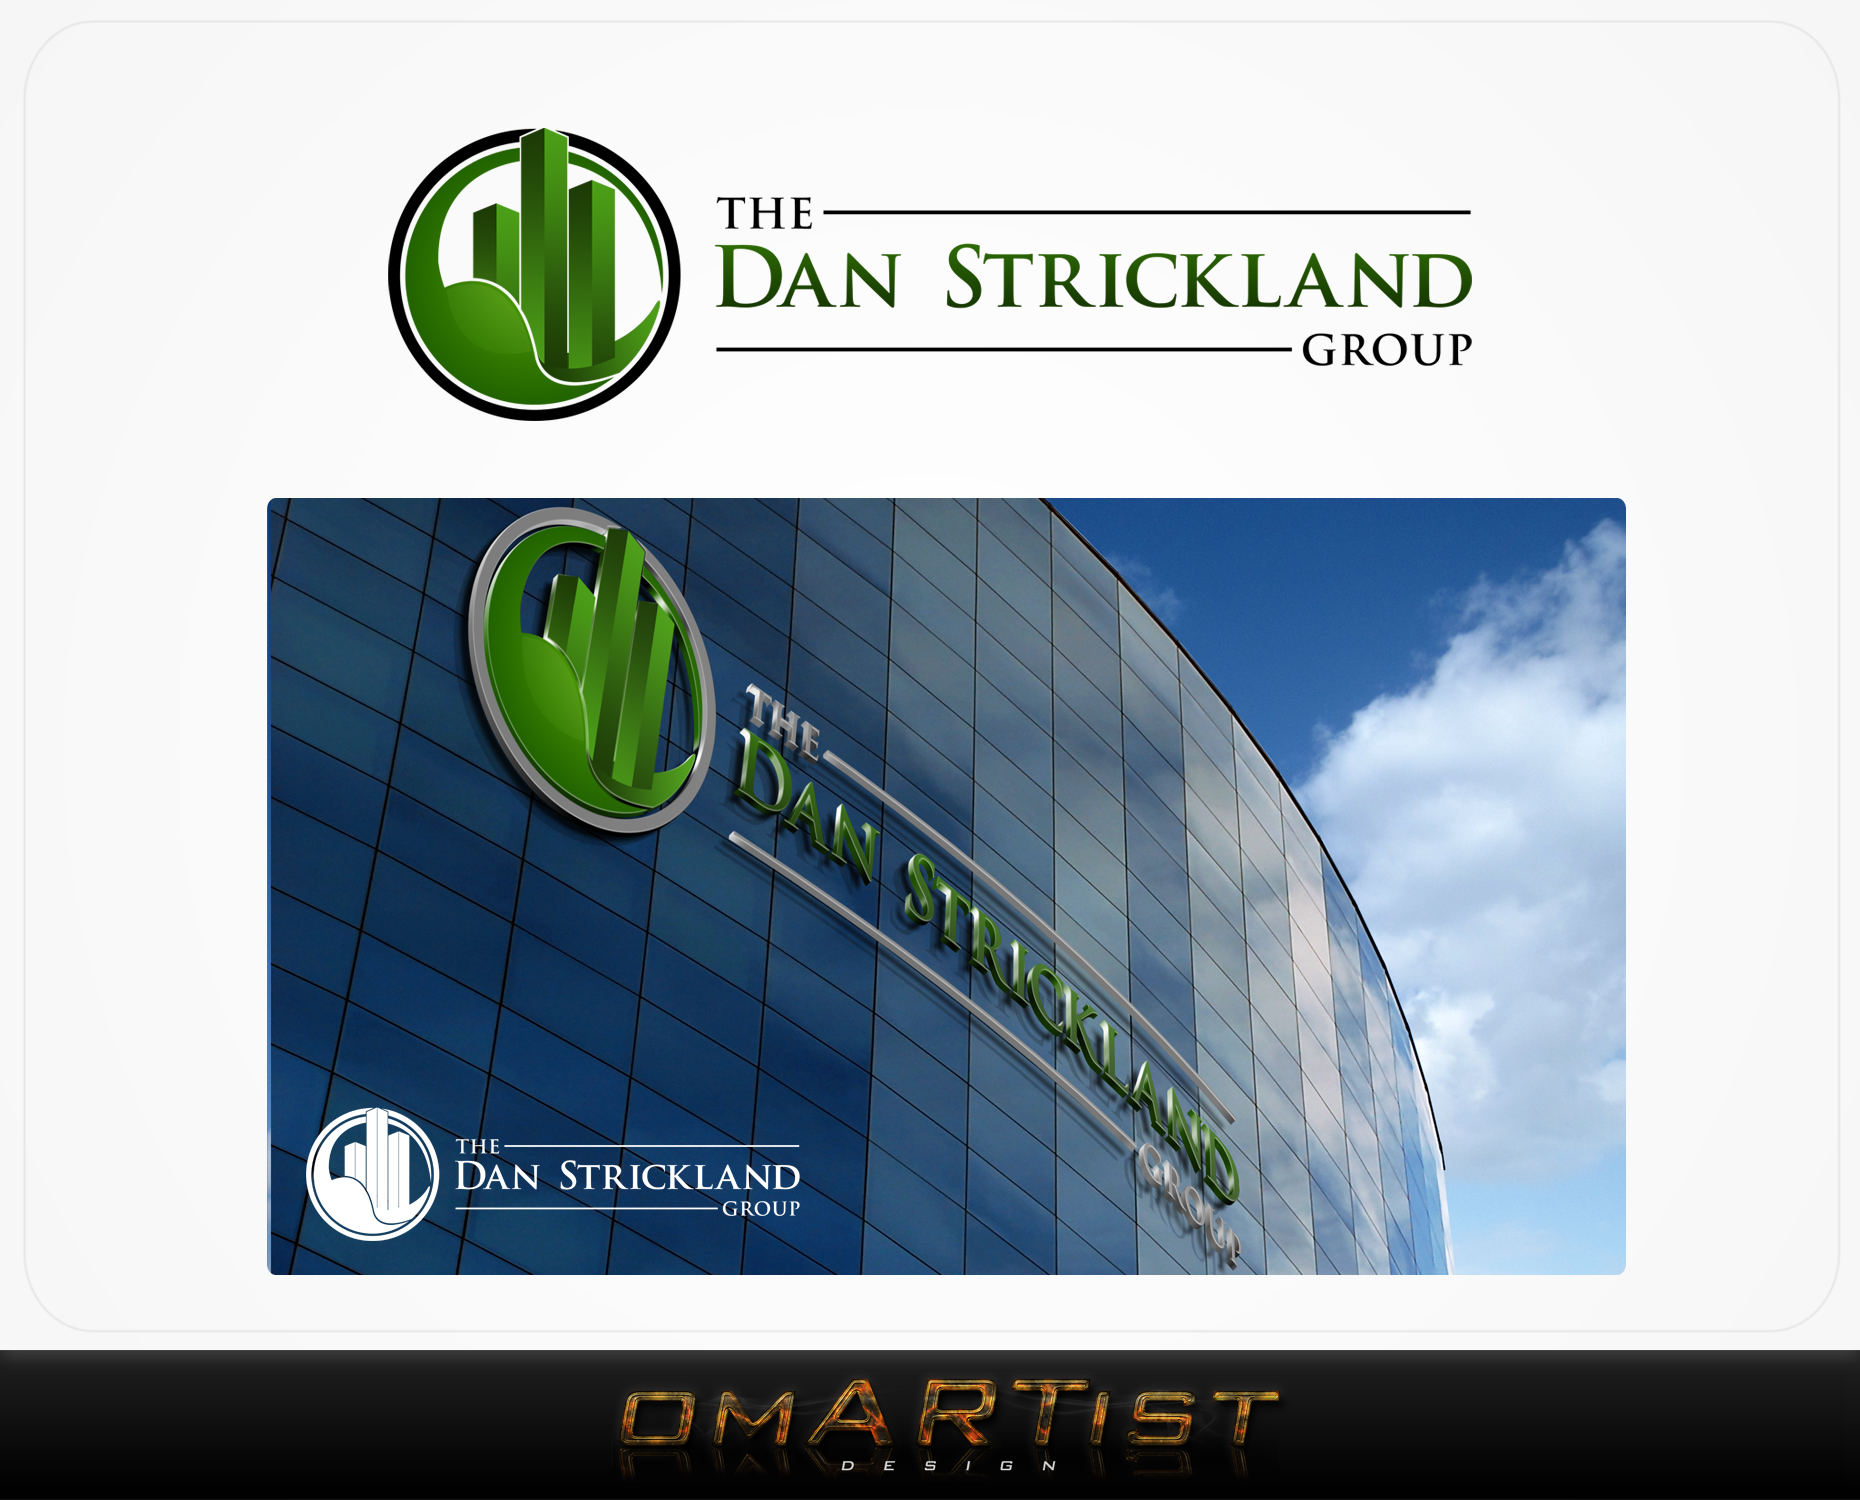 Logo Design by omARTist - Entry No. 178 in the Logo Design Contest Creative Logo Design for The Dan Strickland Group.